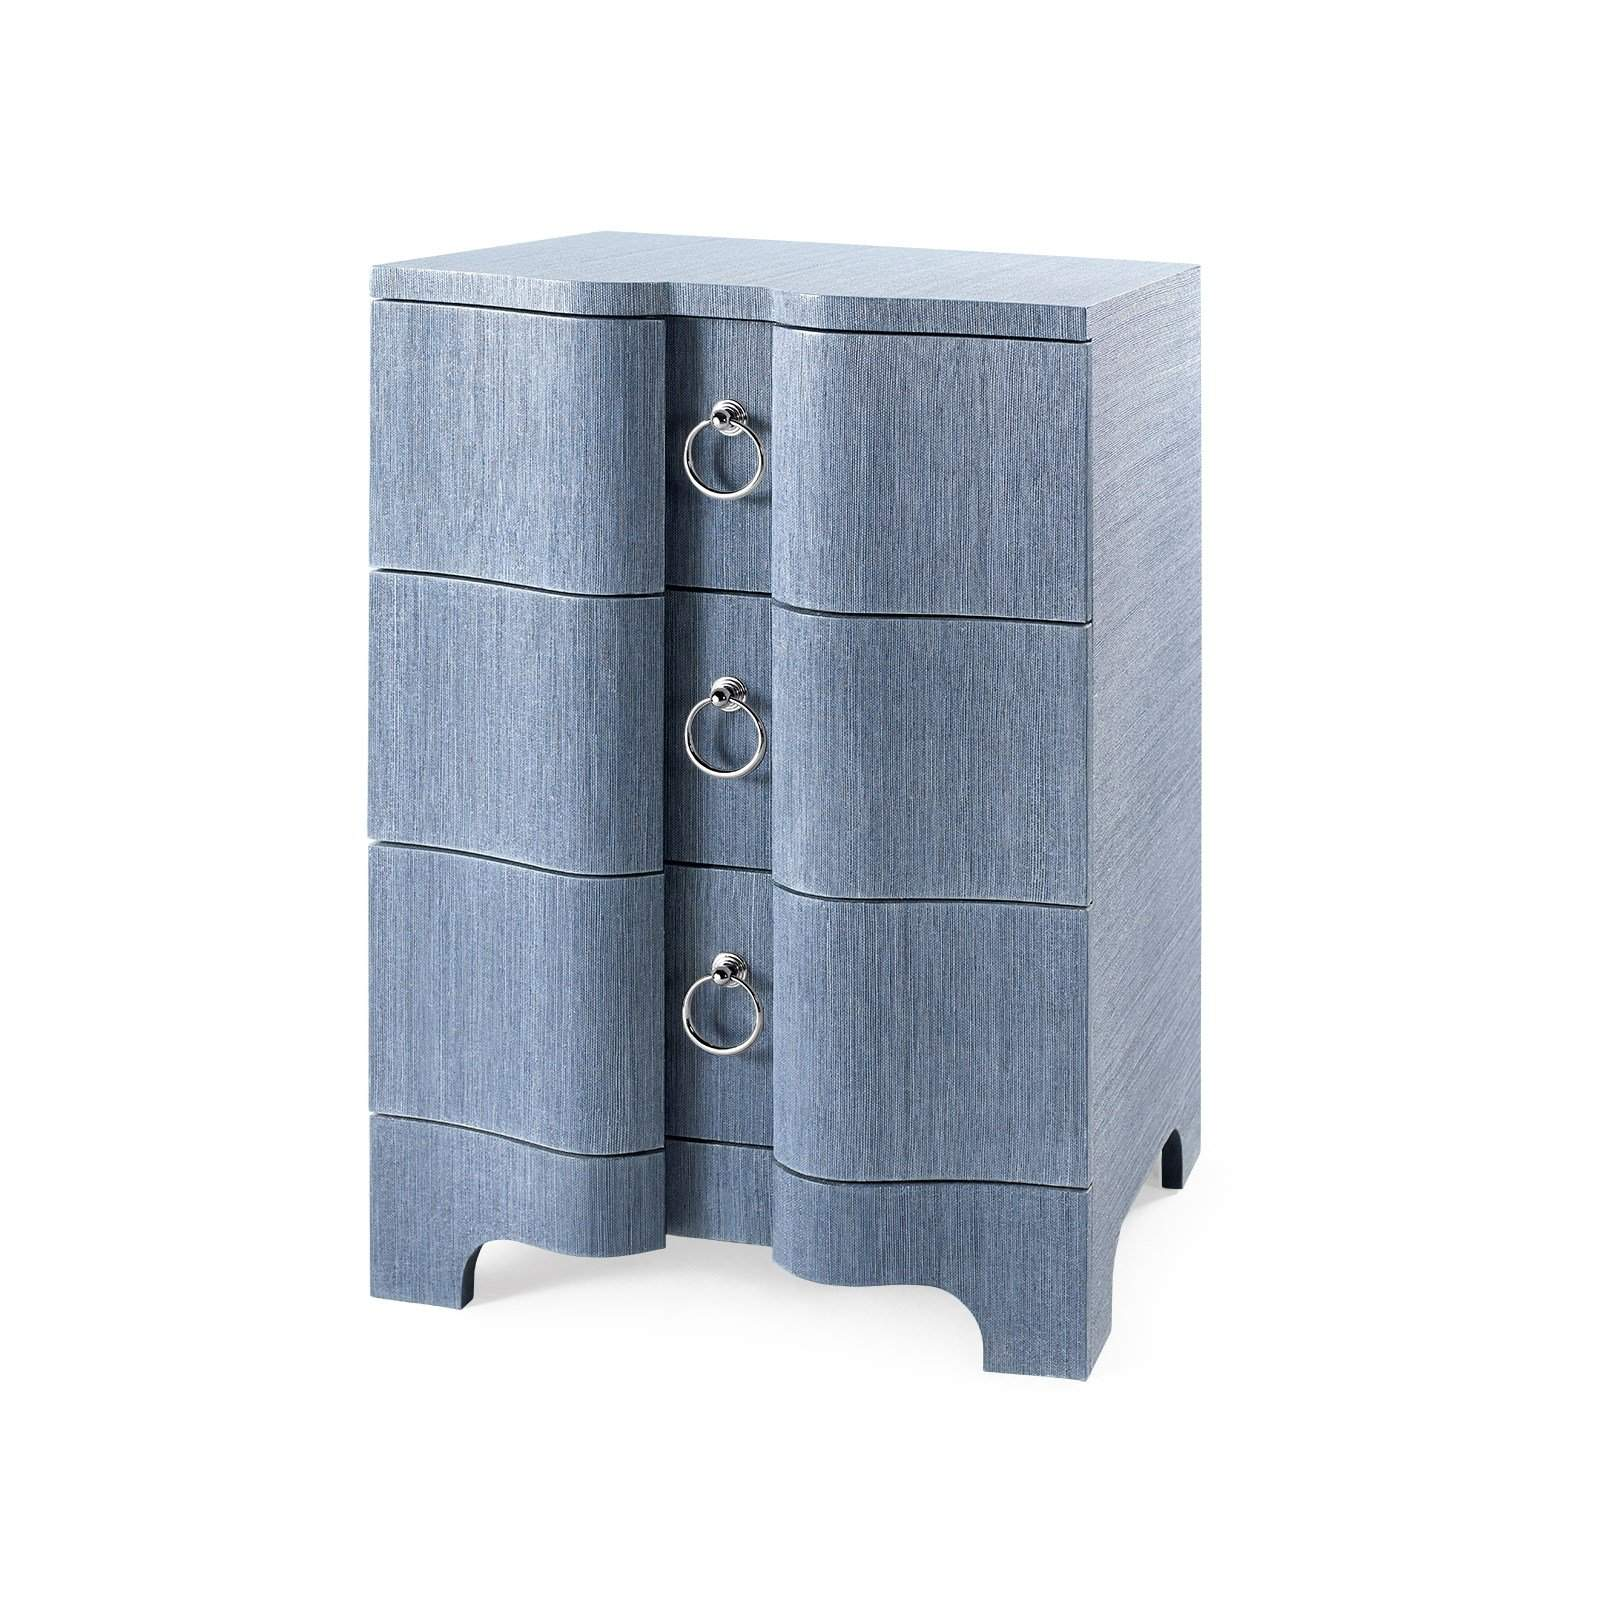 Bungalow 5 - BARDOT 3-DRAWER SIDE TABLE in NAVY BLUE-Bungalow 5-Blue Hand Home